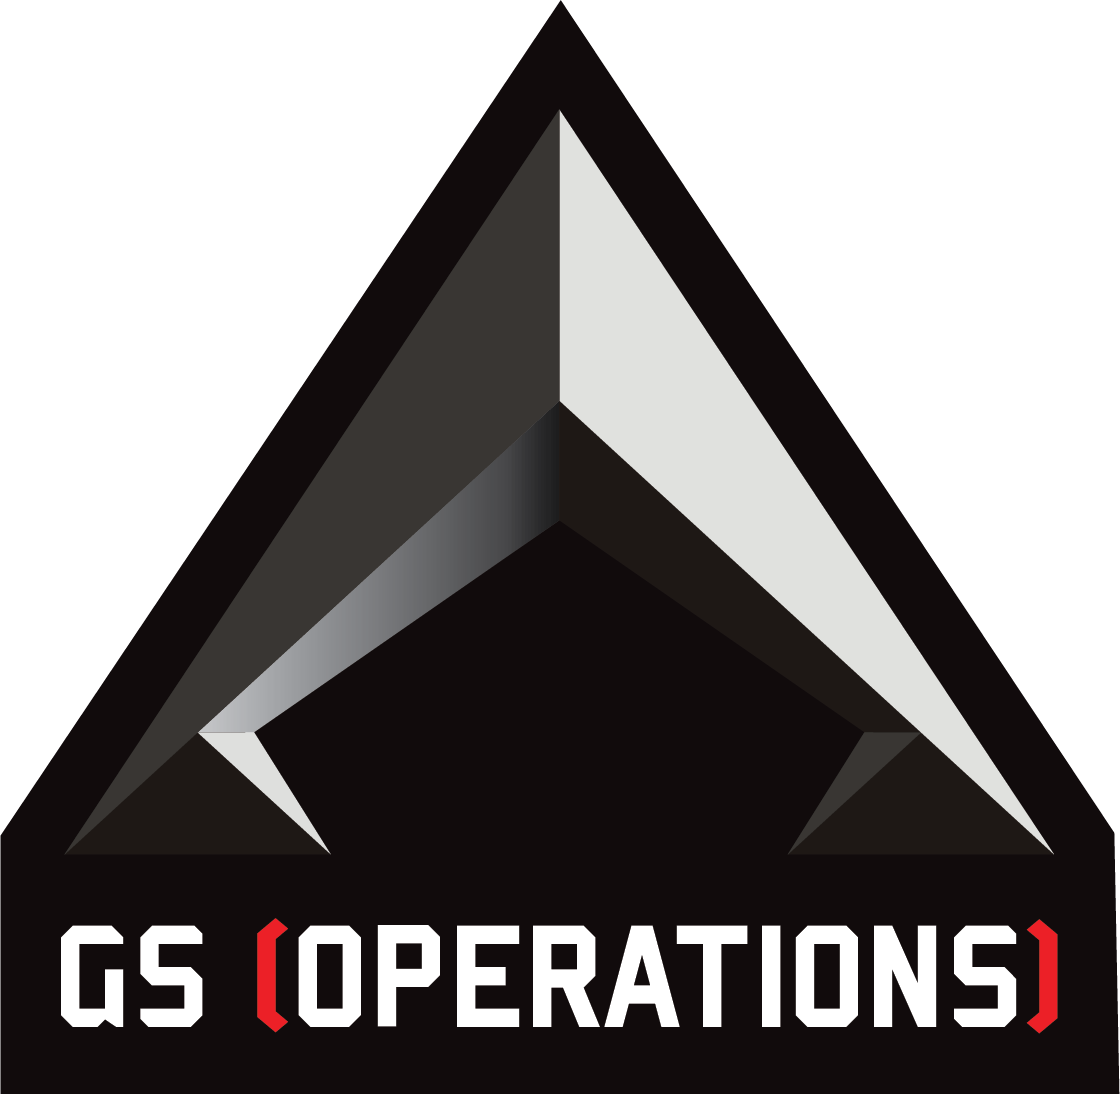 GSOPERATIONS.png